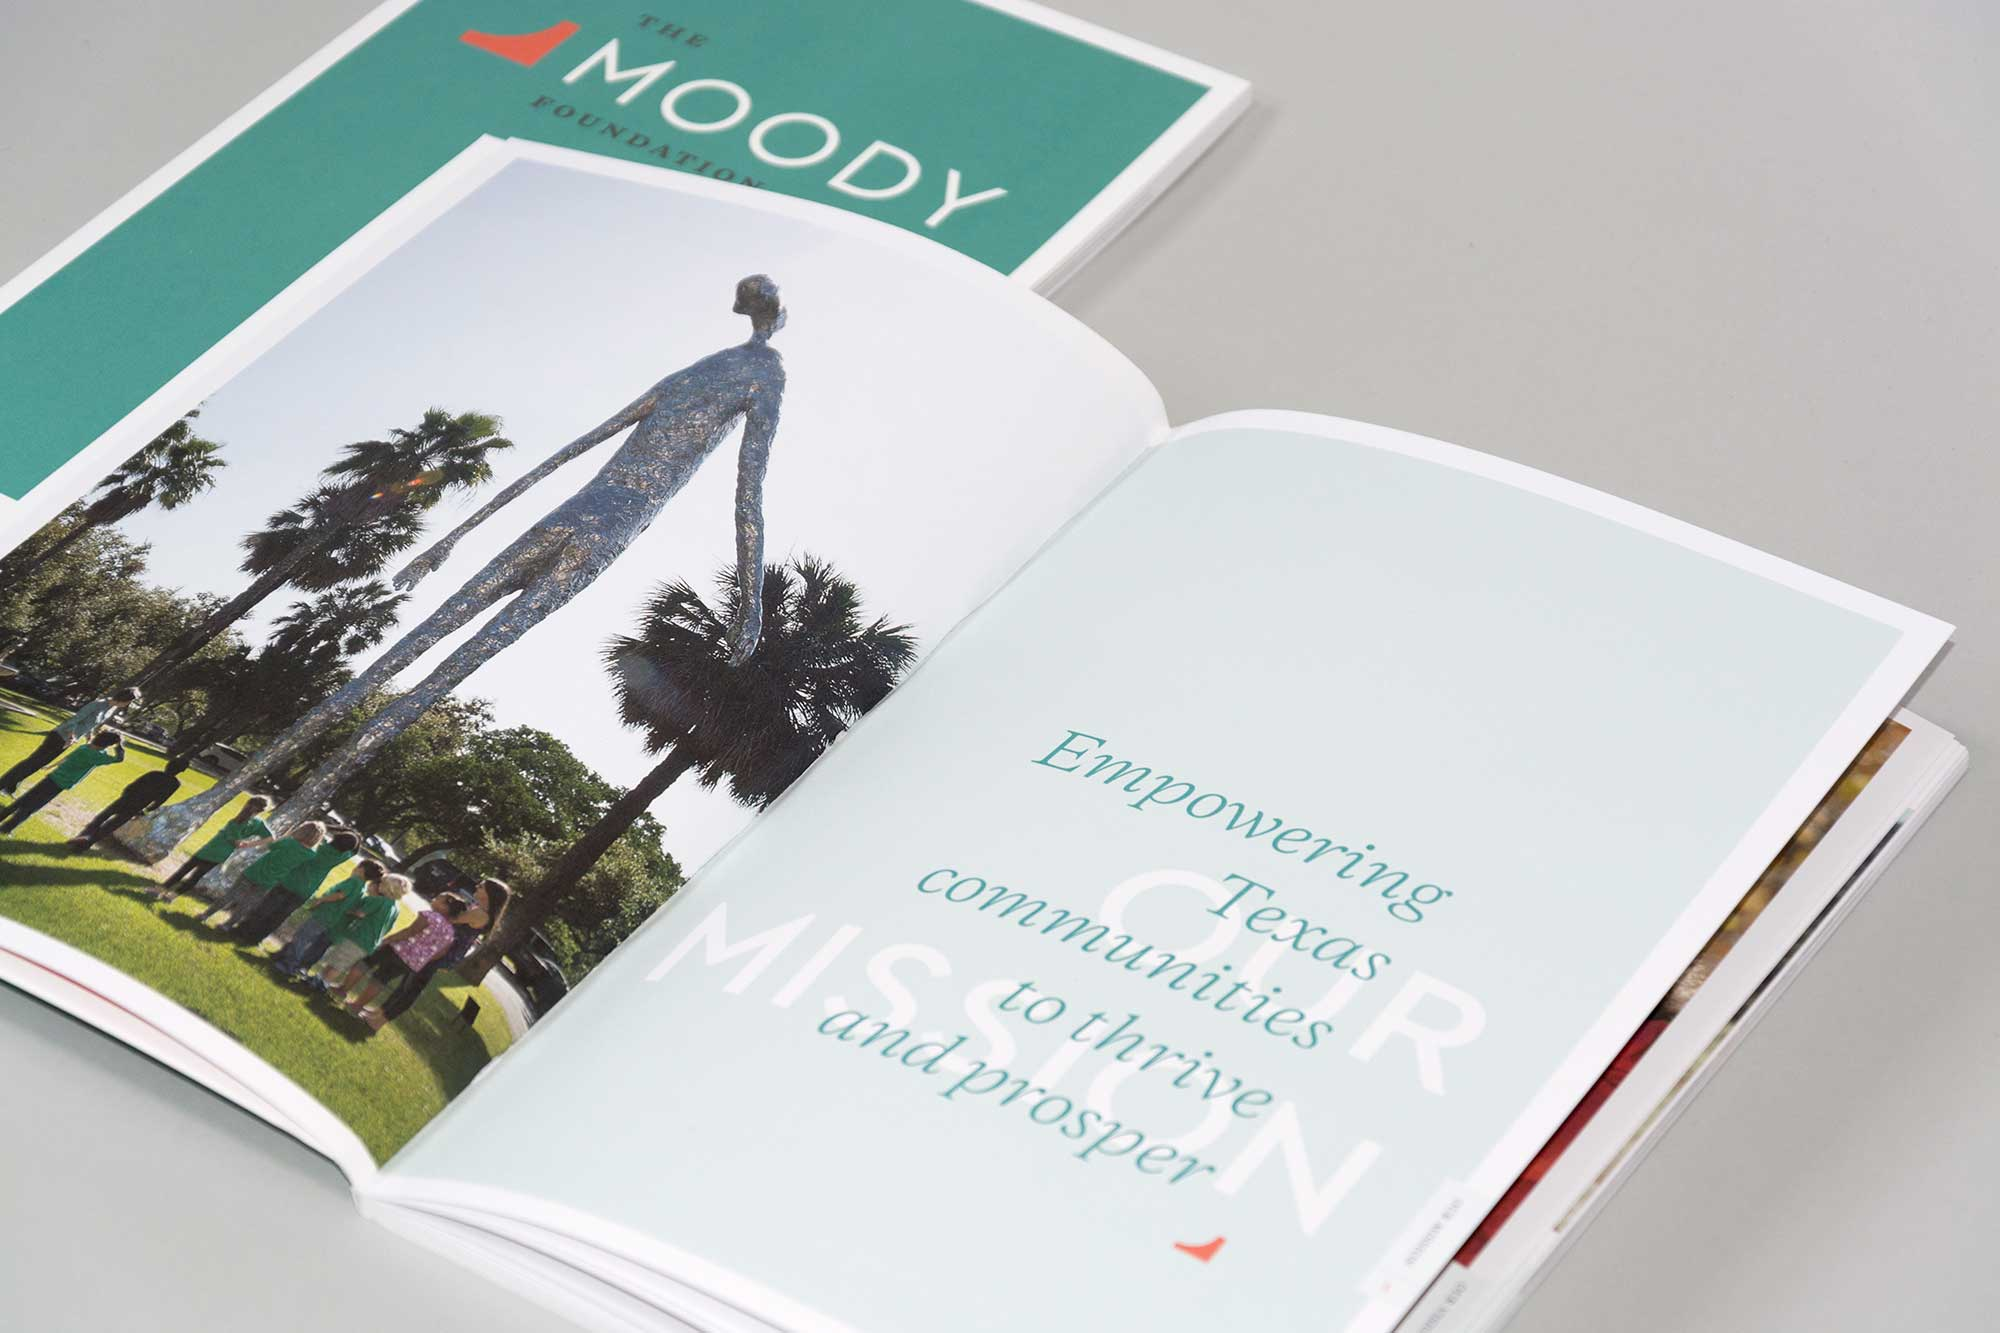 Moody Foundation Annual Report section title spread